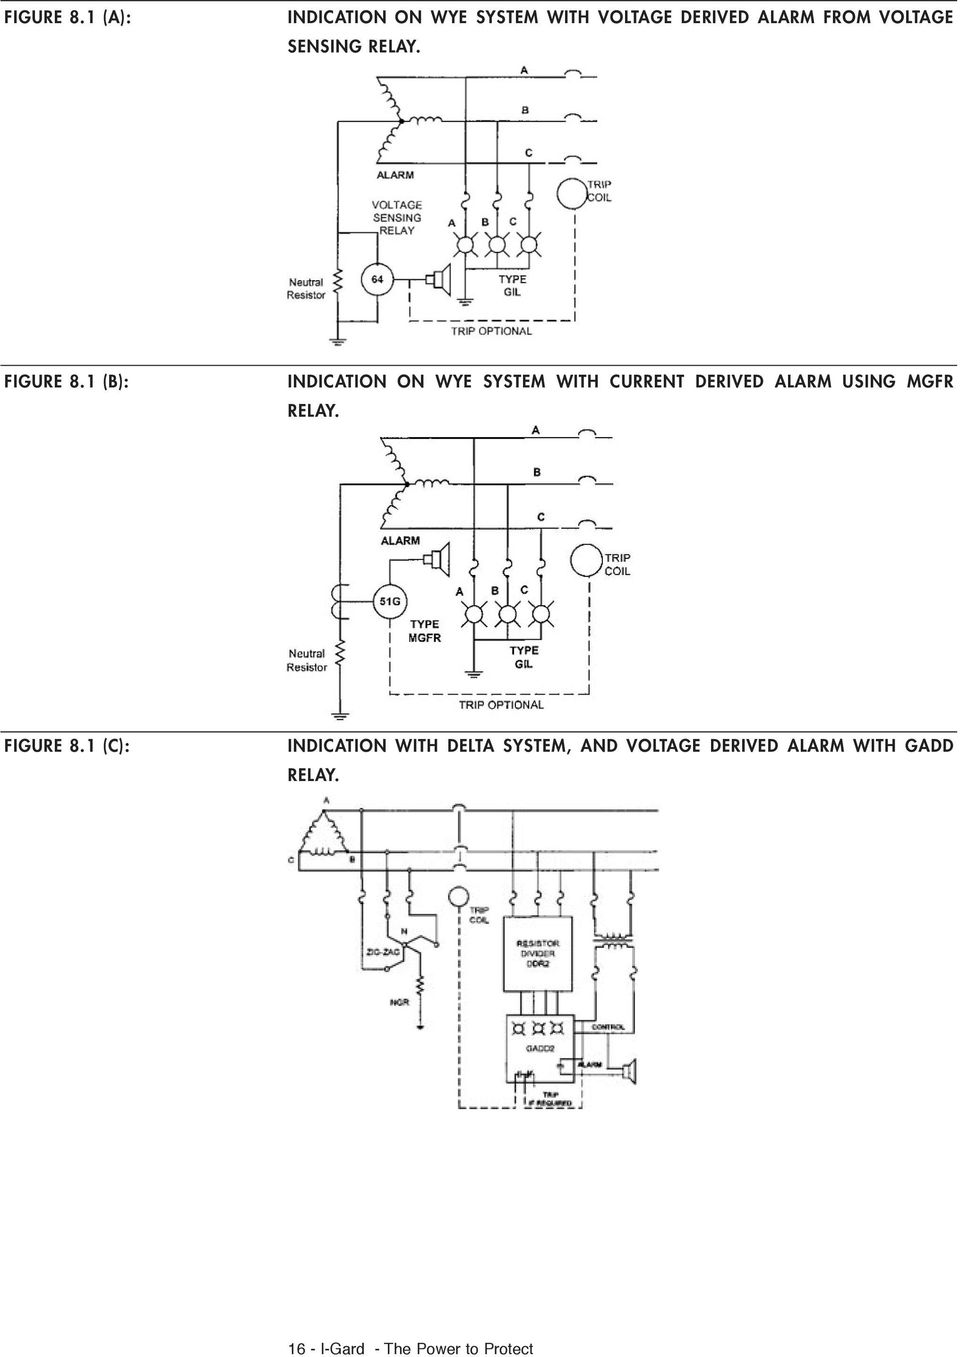 Ground Fault Protection On Ungrounded And High Resistance Grounded Wiring Zig Unit Sensing Relay